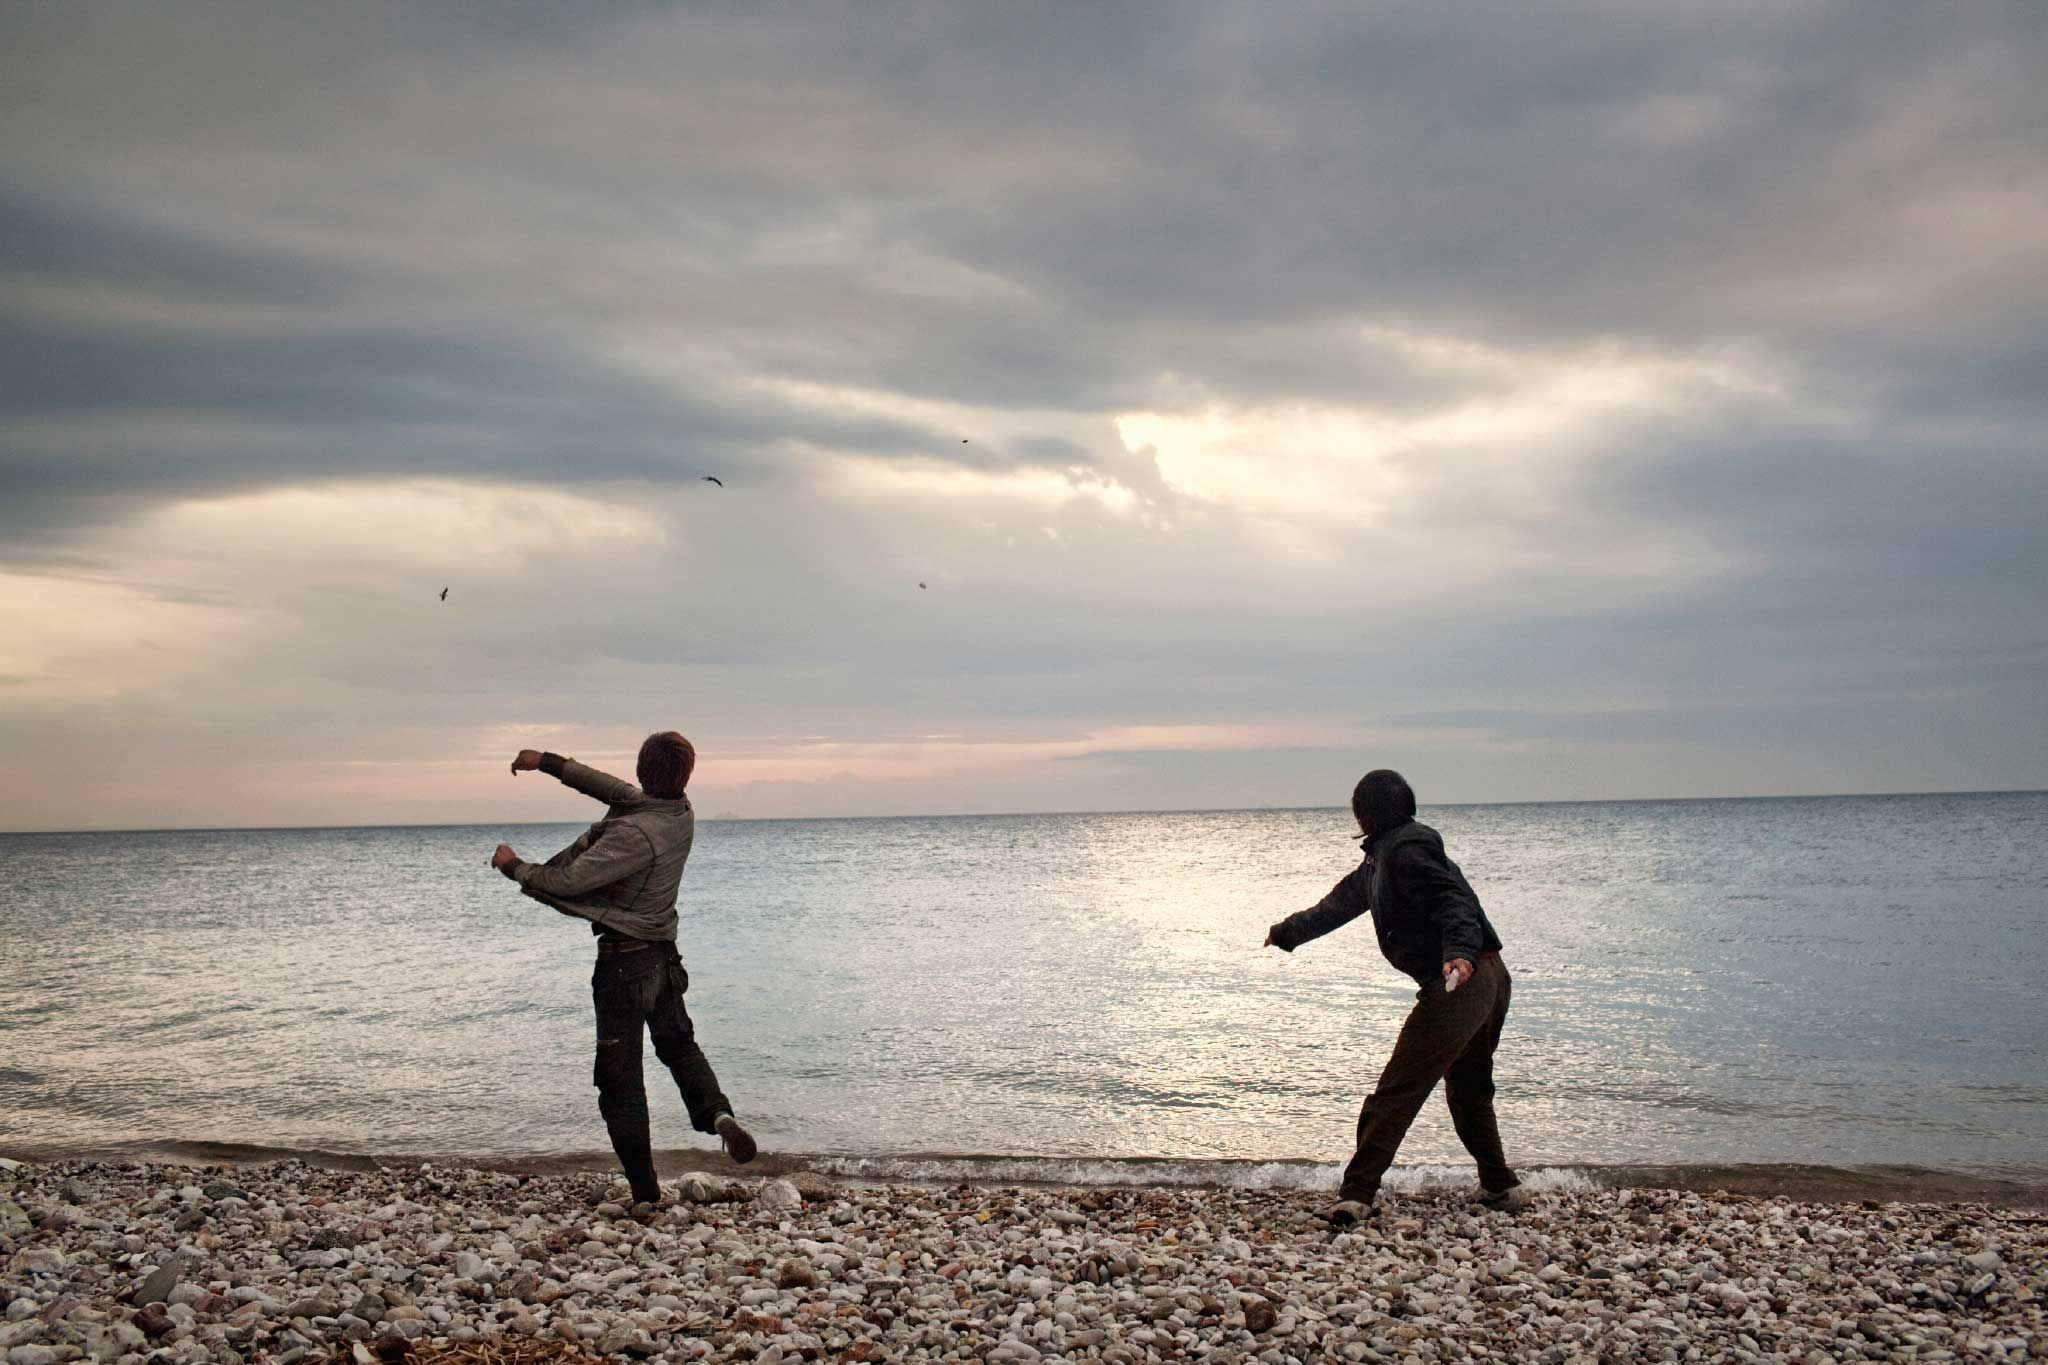 Two Afghan boys throw stones into the sea, while waiting for the evening to arrive, when they can sneak into the port and board a ship bound for Italy illegally in Patras, Italy, March 8, 2012. Patras is one of the main escape points from Greece, due to the numerous cargo ships that dock in the port and are bound for Italy.